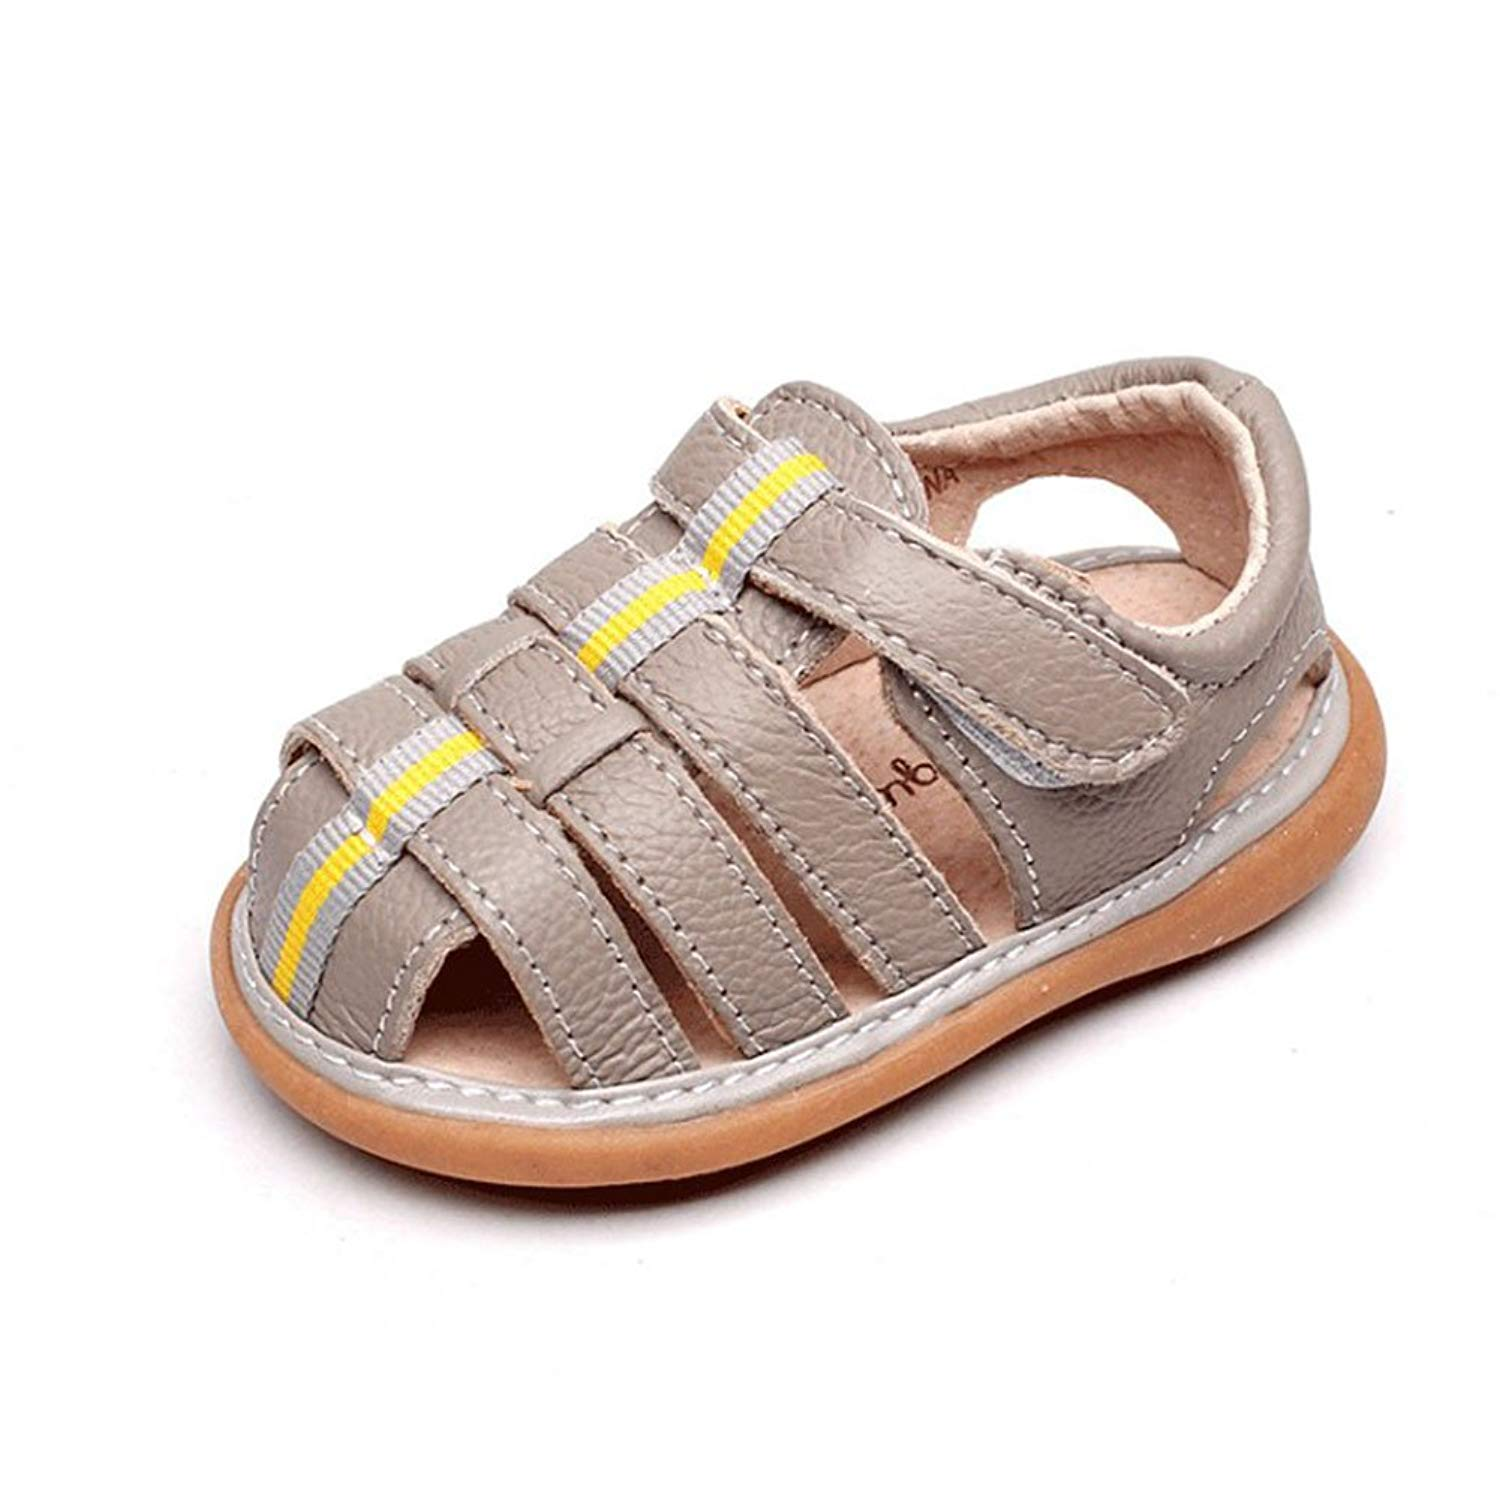 UBELLA Toddler Baby Girls Sandals Squeaky Shoes Bowknot Princess Punch Flats Removable Squeakers